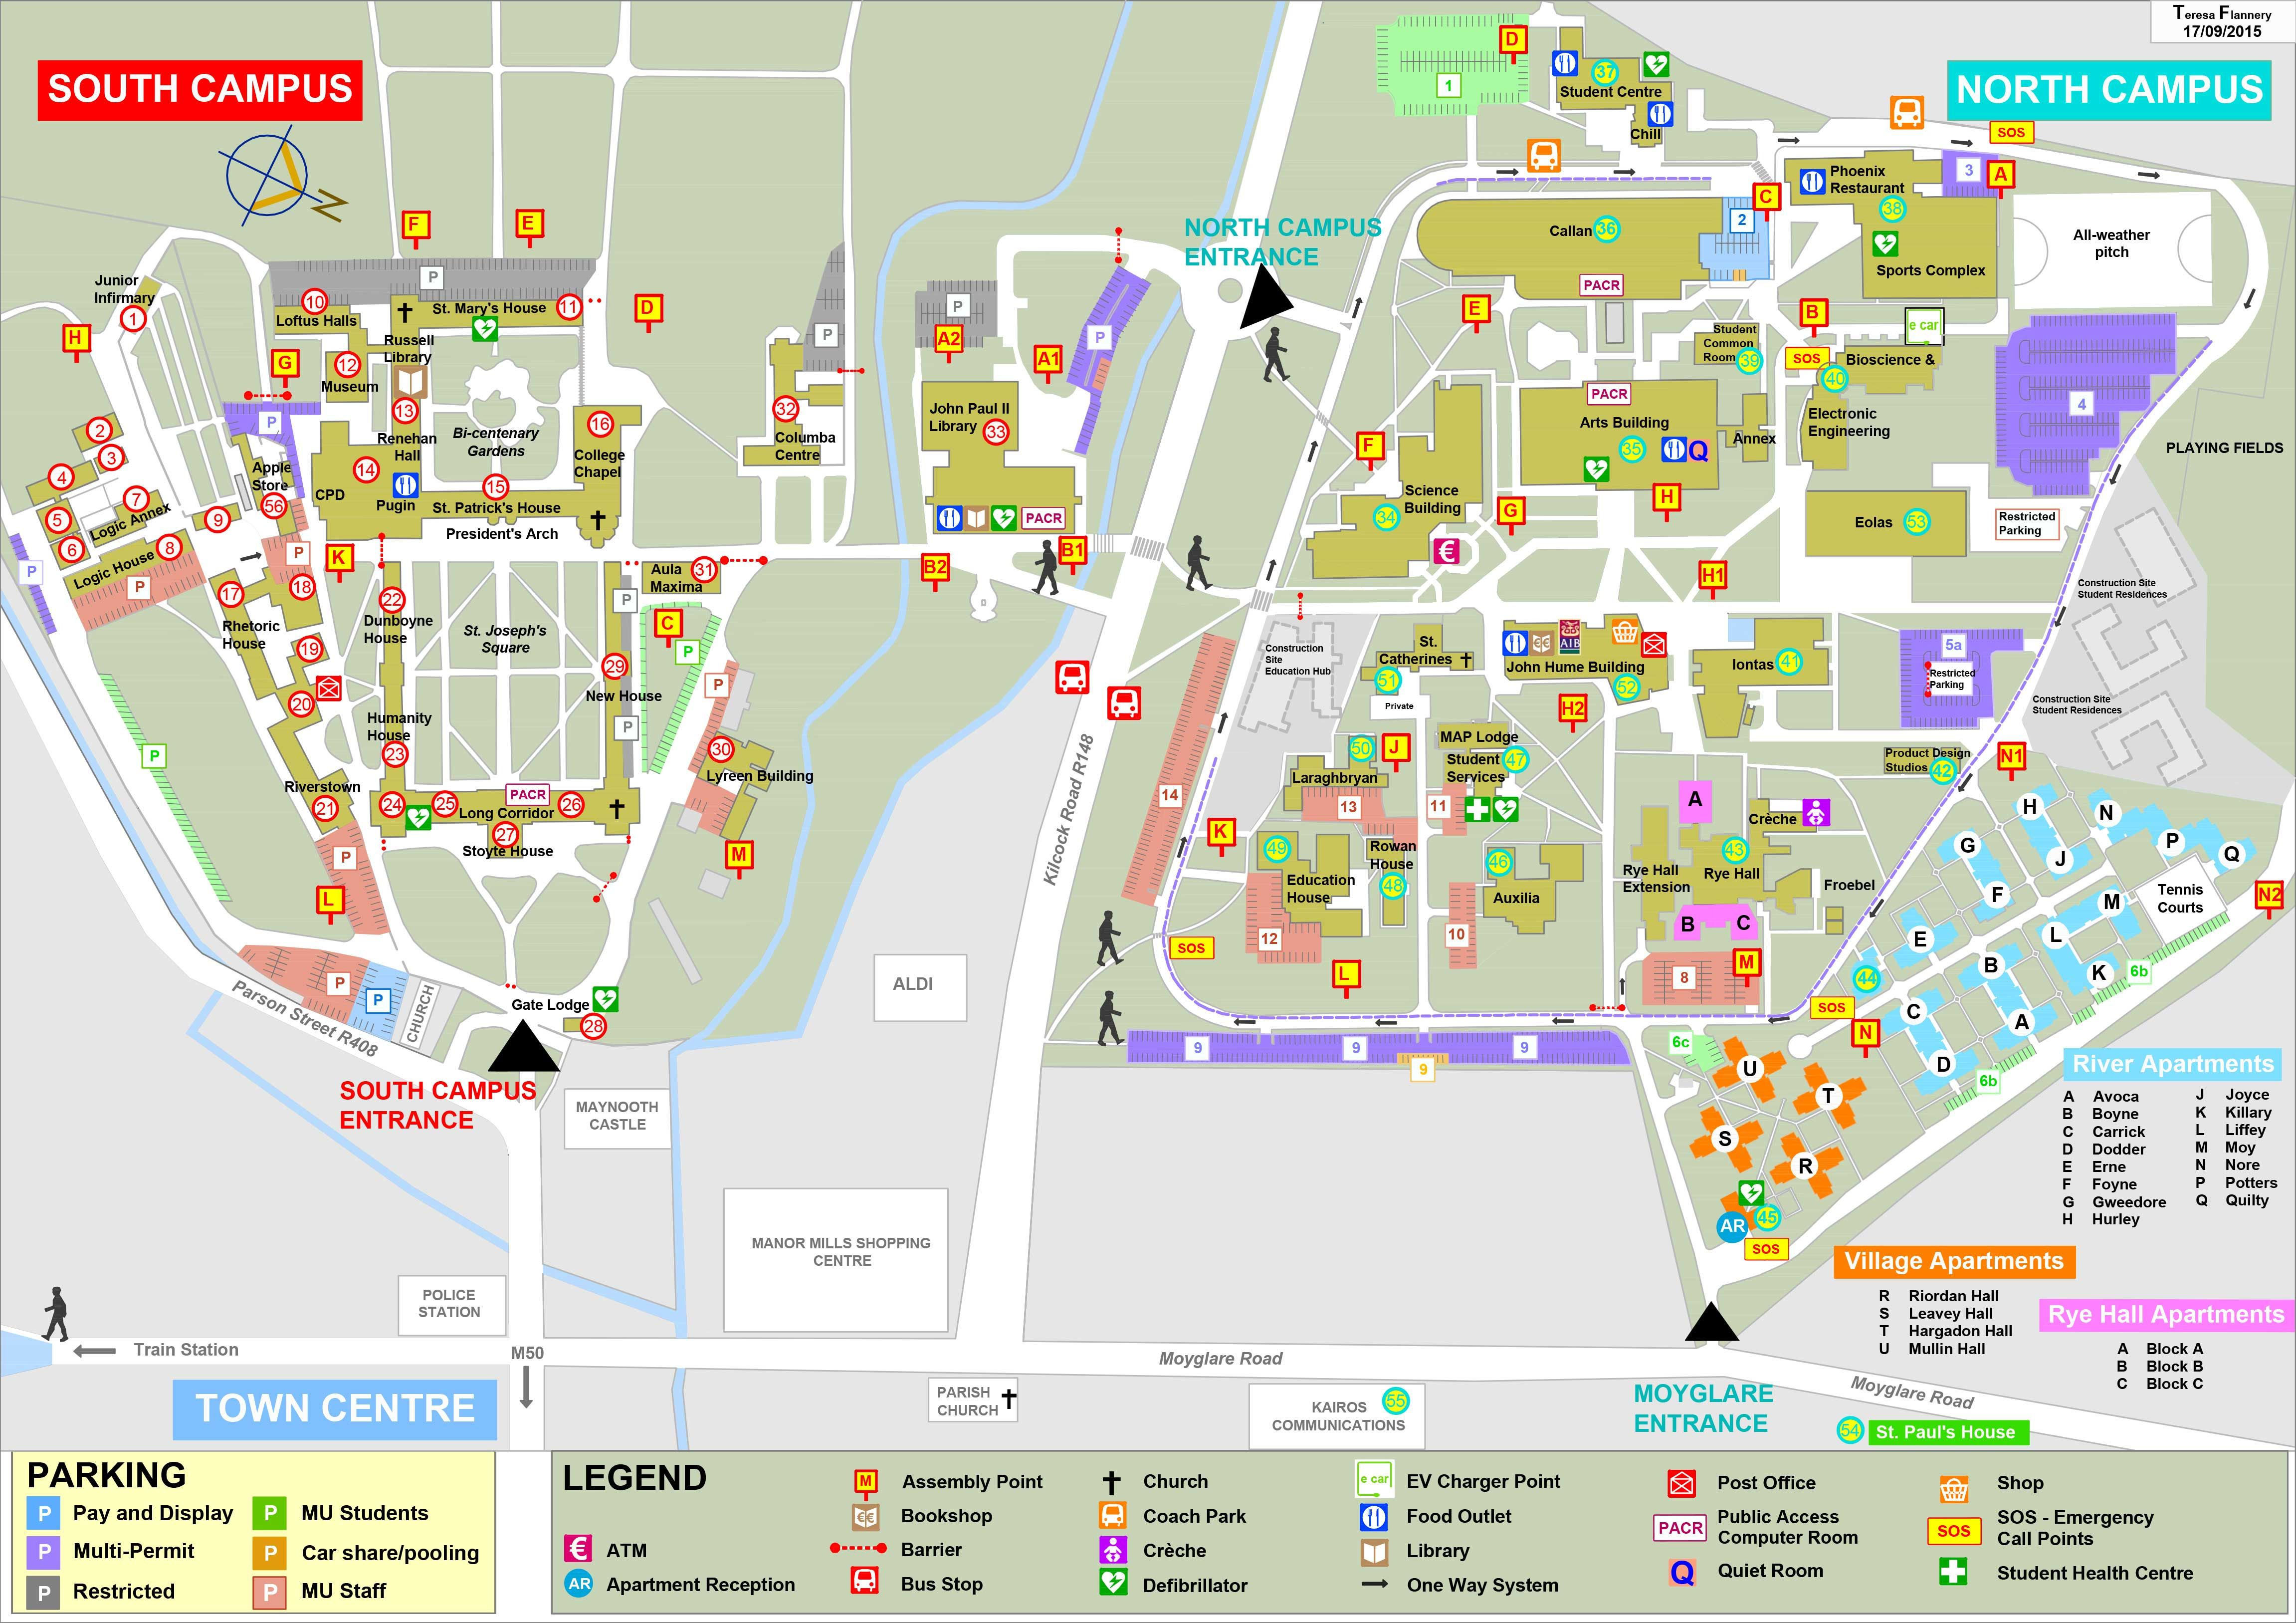 map of maynooth campus Campus Map For Maynooth University Campus Map Campus North Campus map of maynooth campus